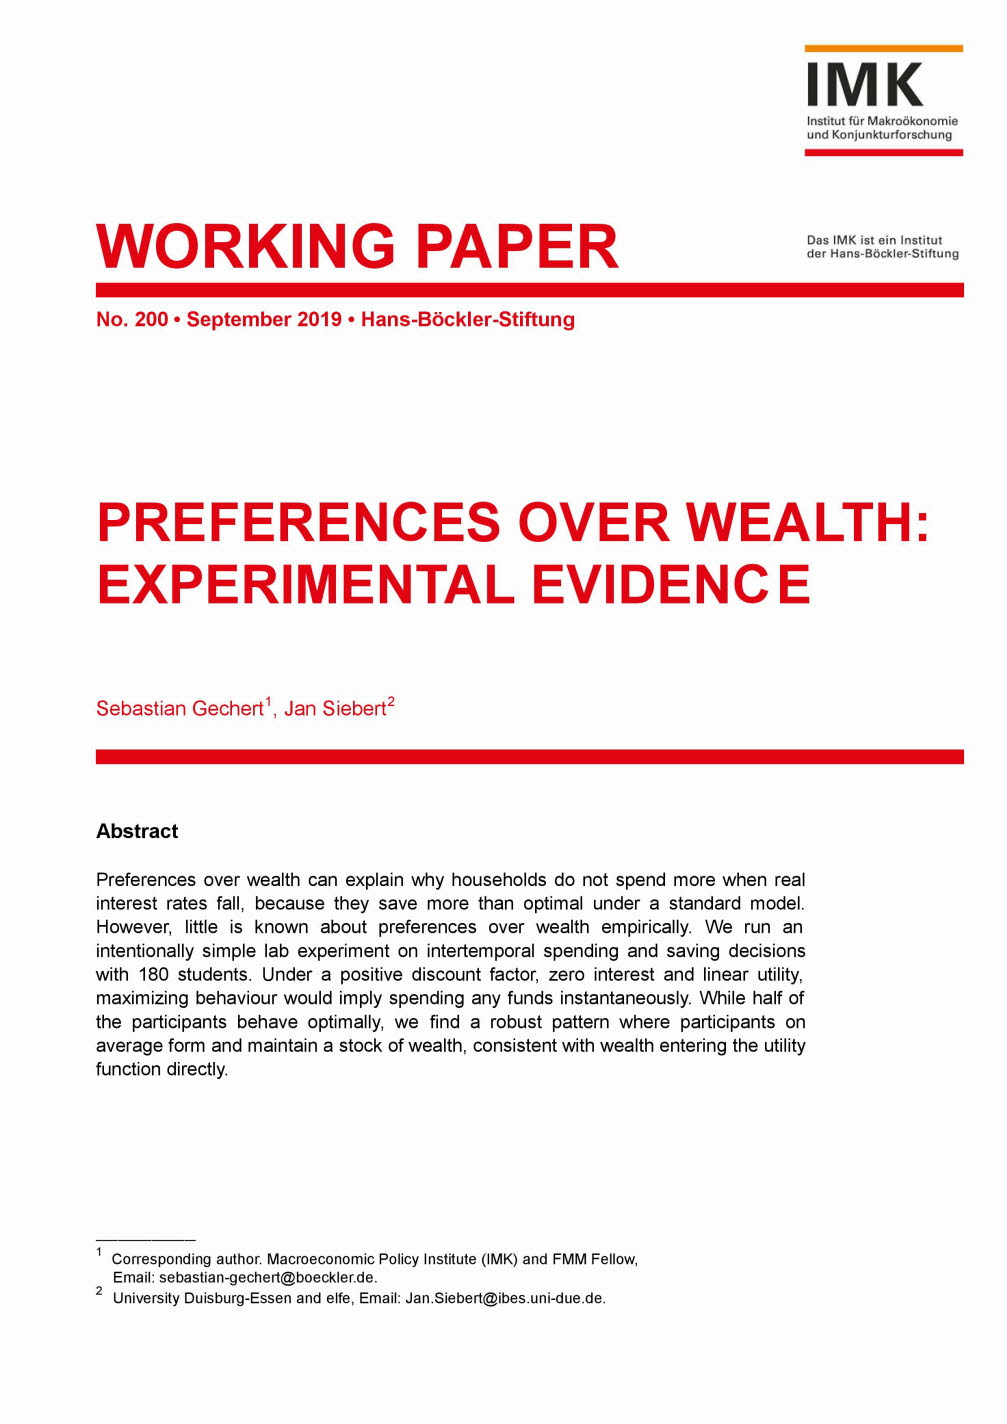 Preferences over wealth